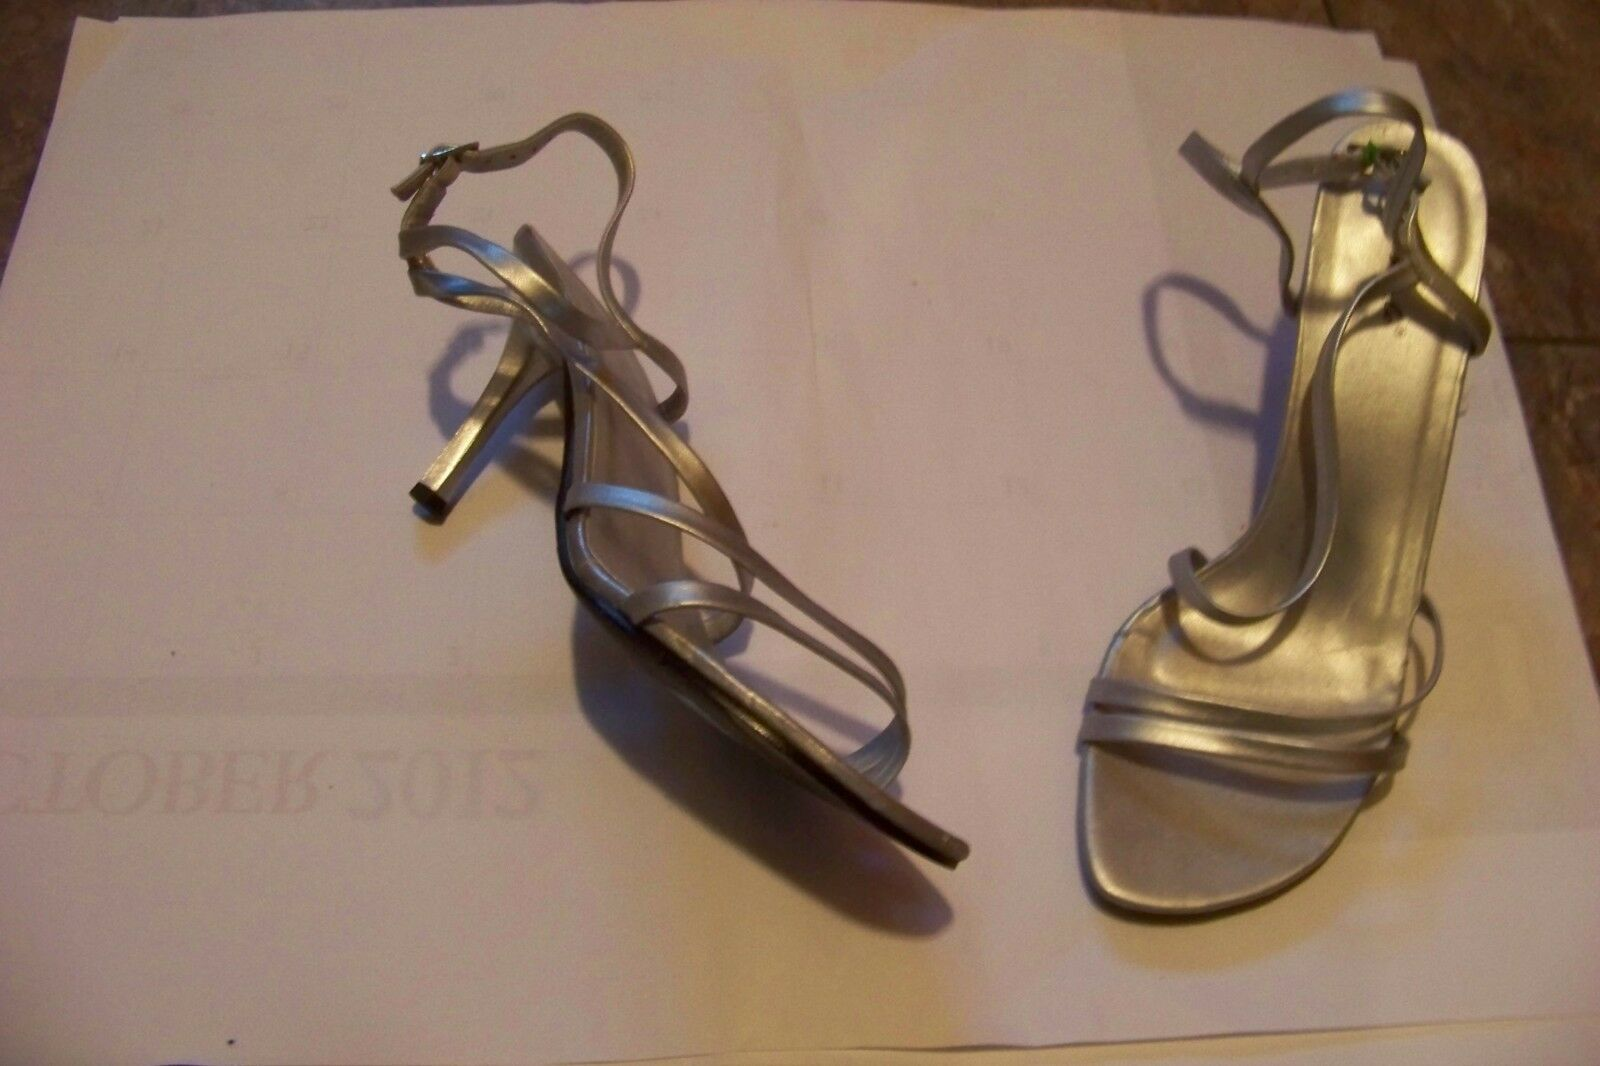 womens herstyle silver 11 strappy heels shoes size 11 silver 2c5b14